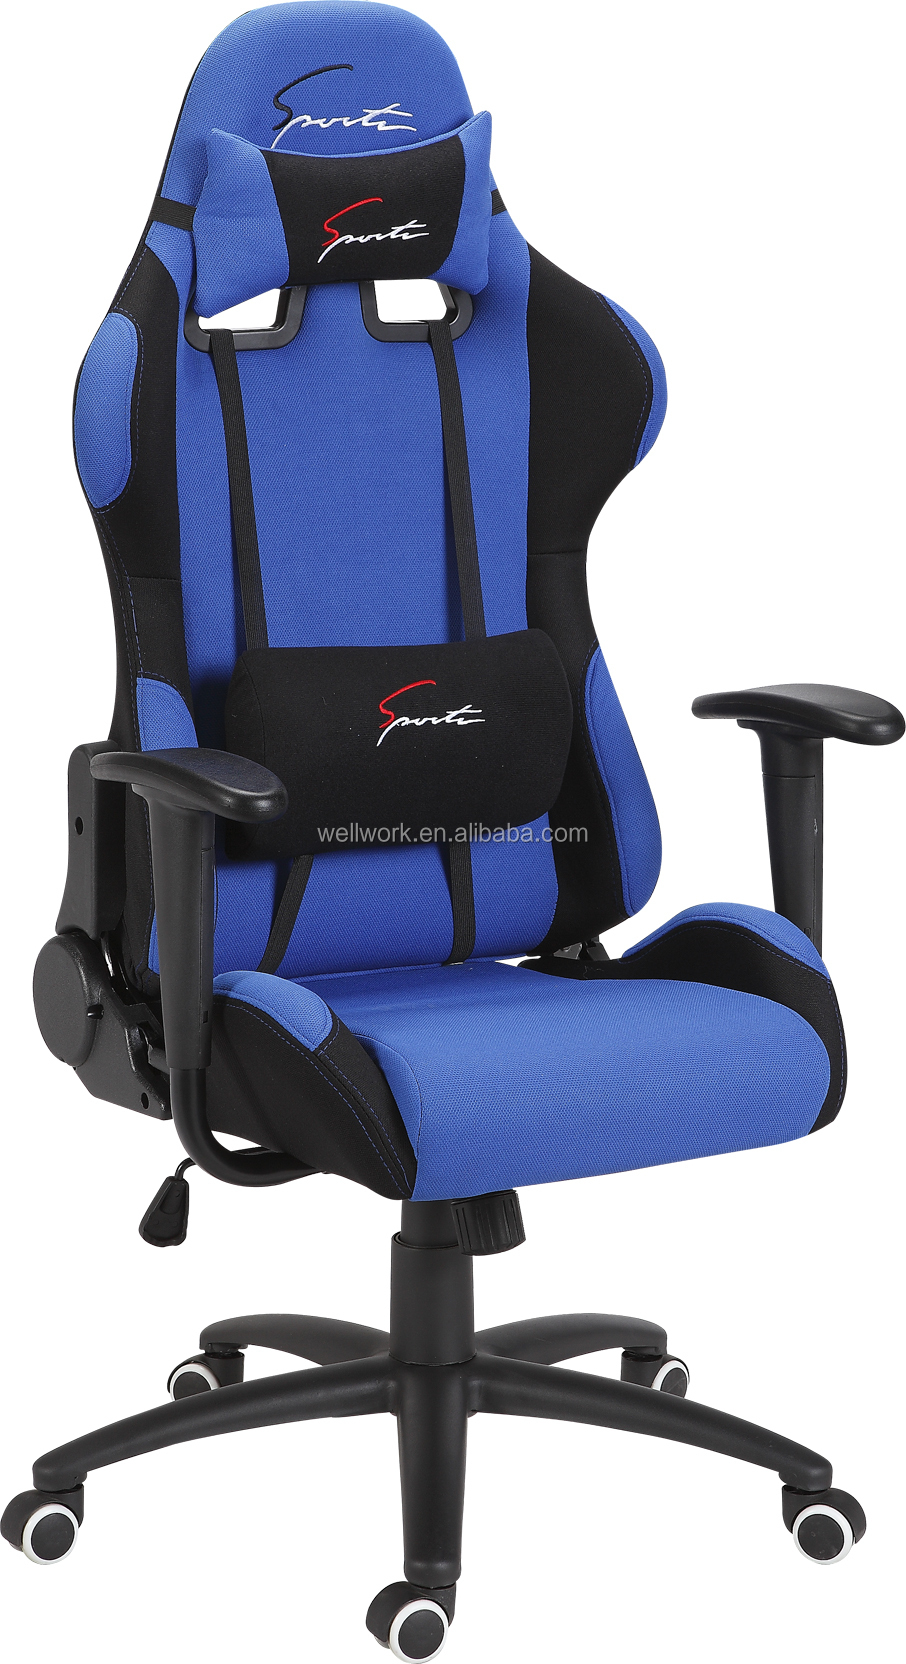 Workwell Kw G03a Gamer Chair With Metal Frame, View Gaming Chair, Workwell Product Details From